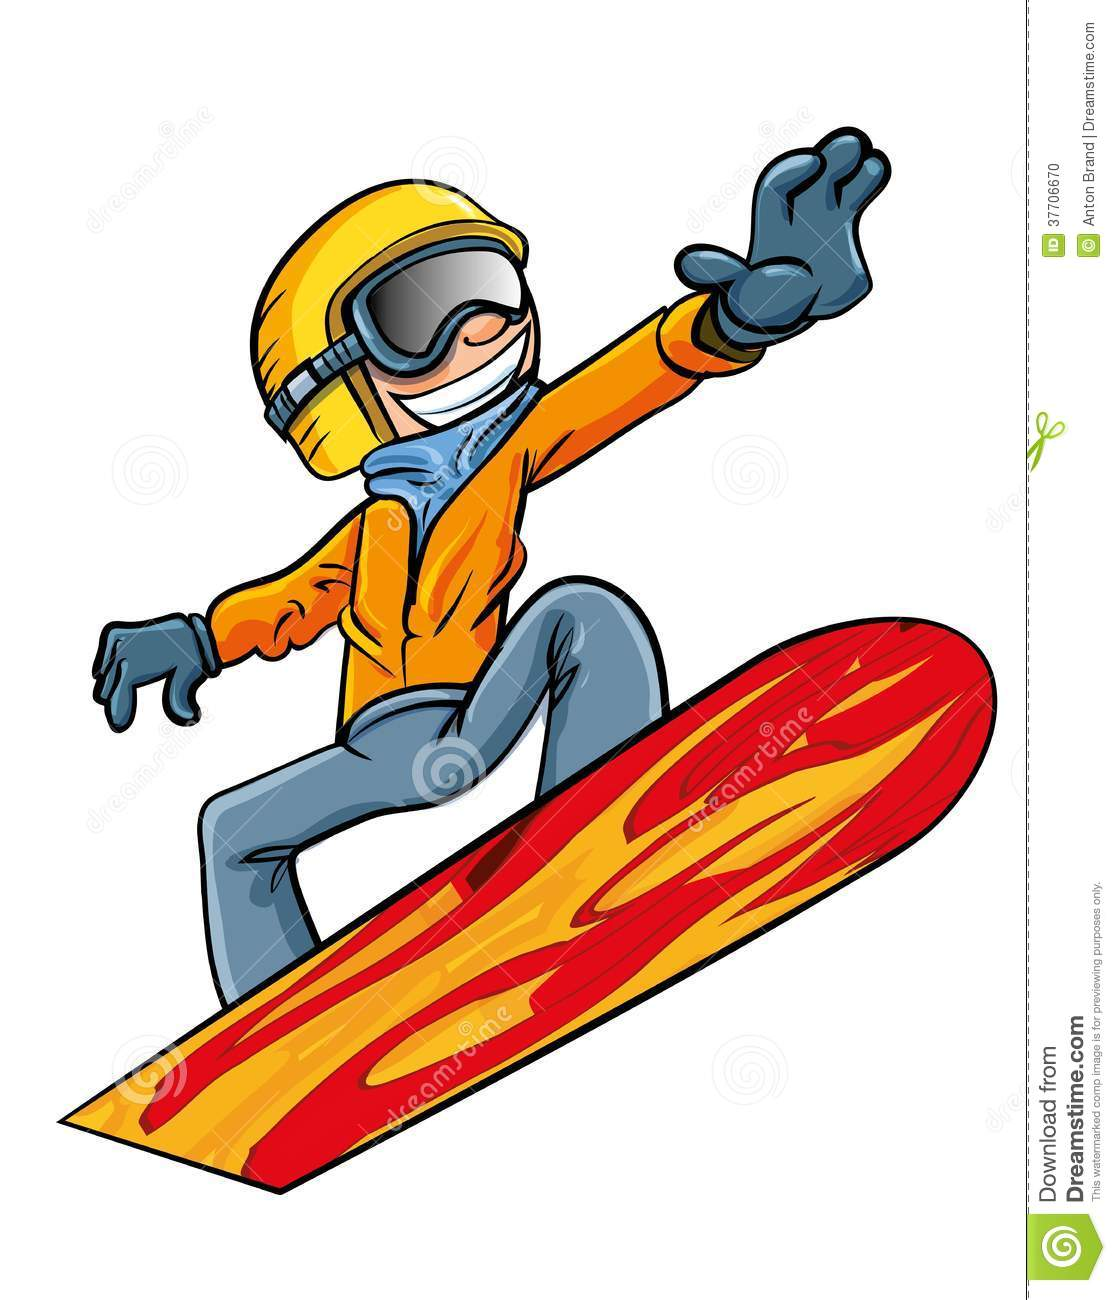 Cartoon Snowboarder Flying Through The Air Stock Photo - Image ...